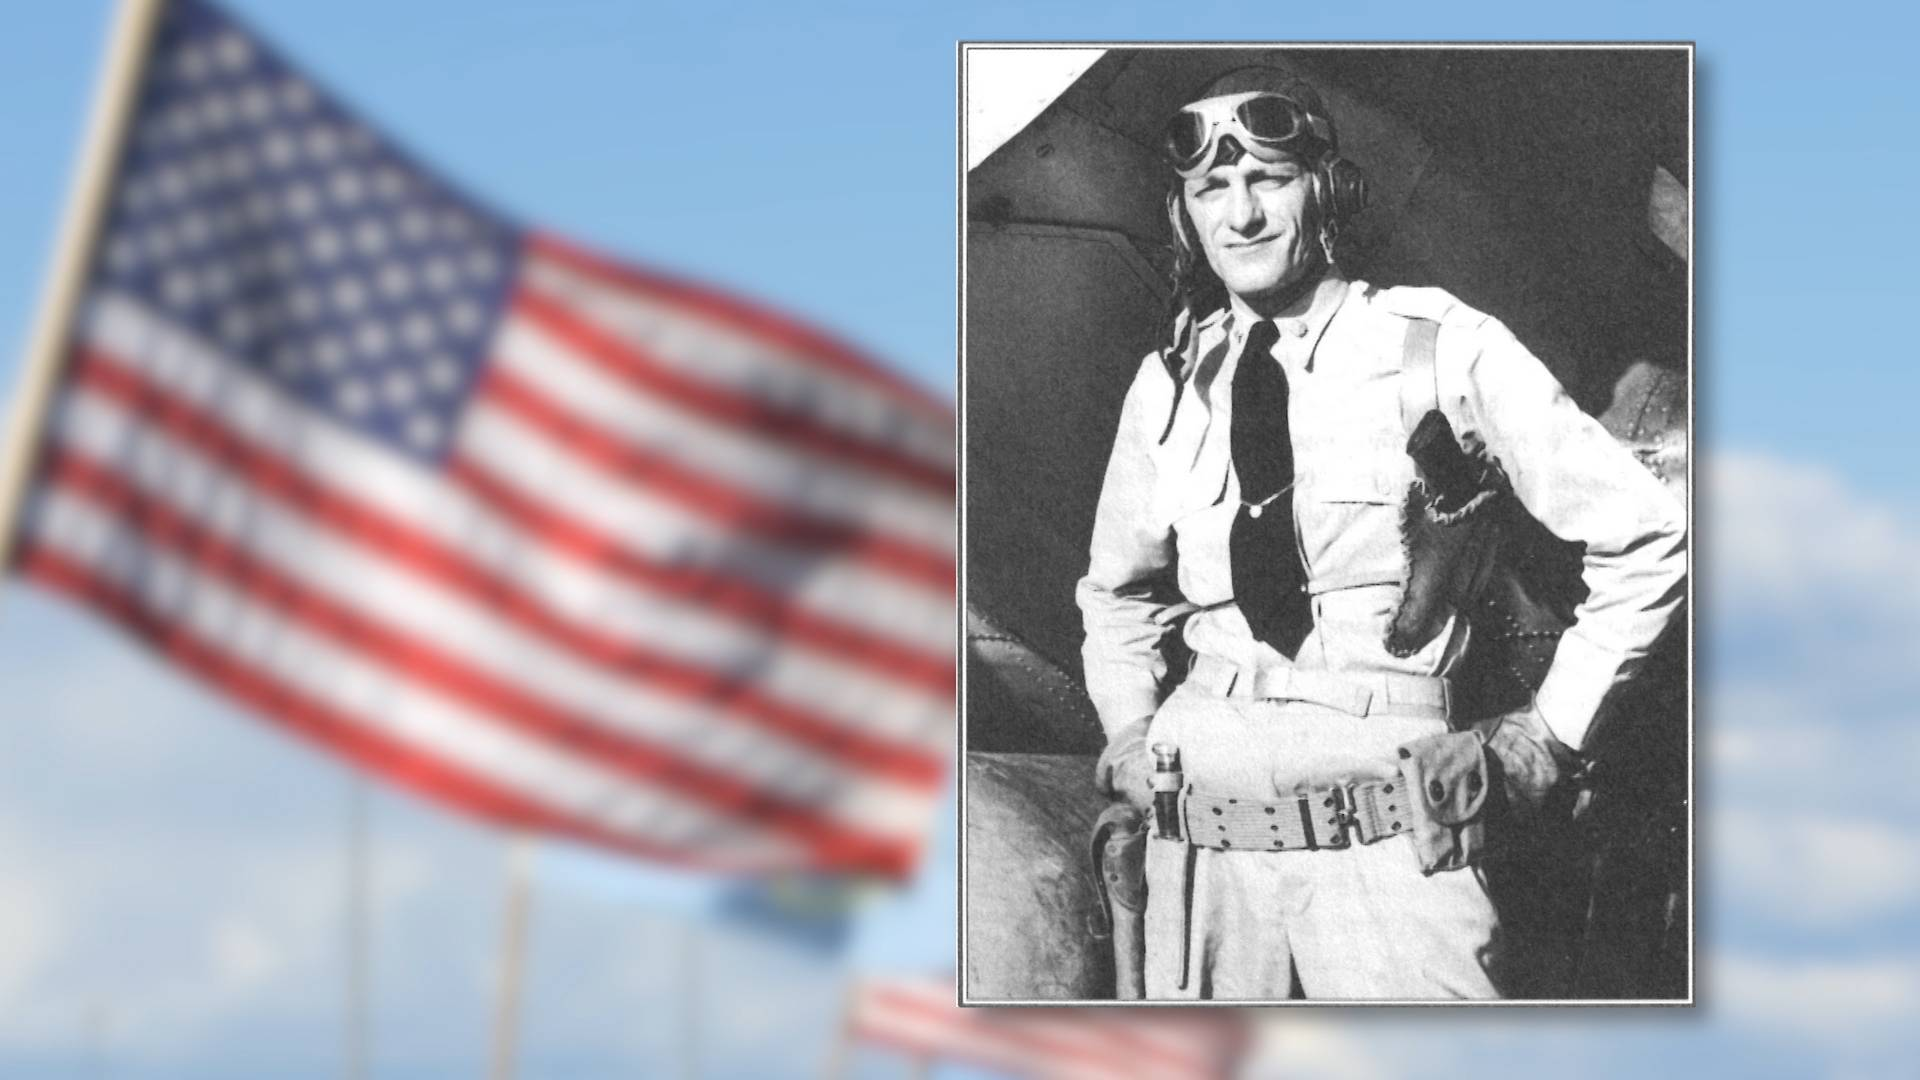 Pilot John Waldron was KIA during the Battle of Midway